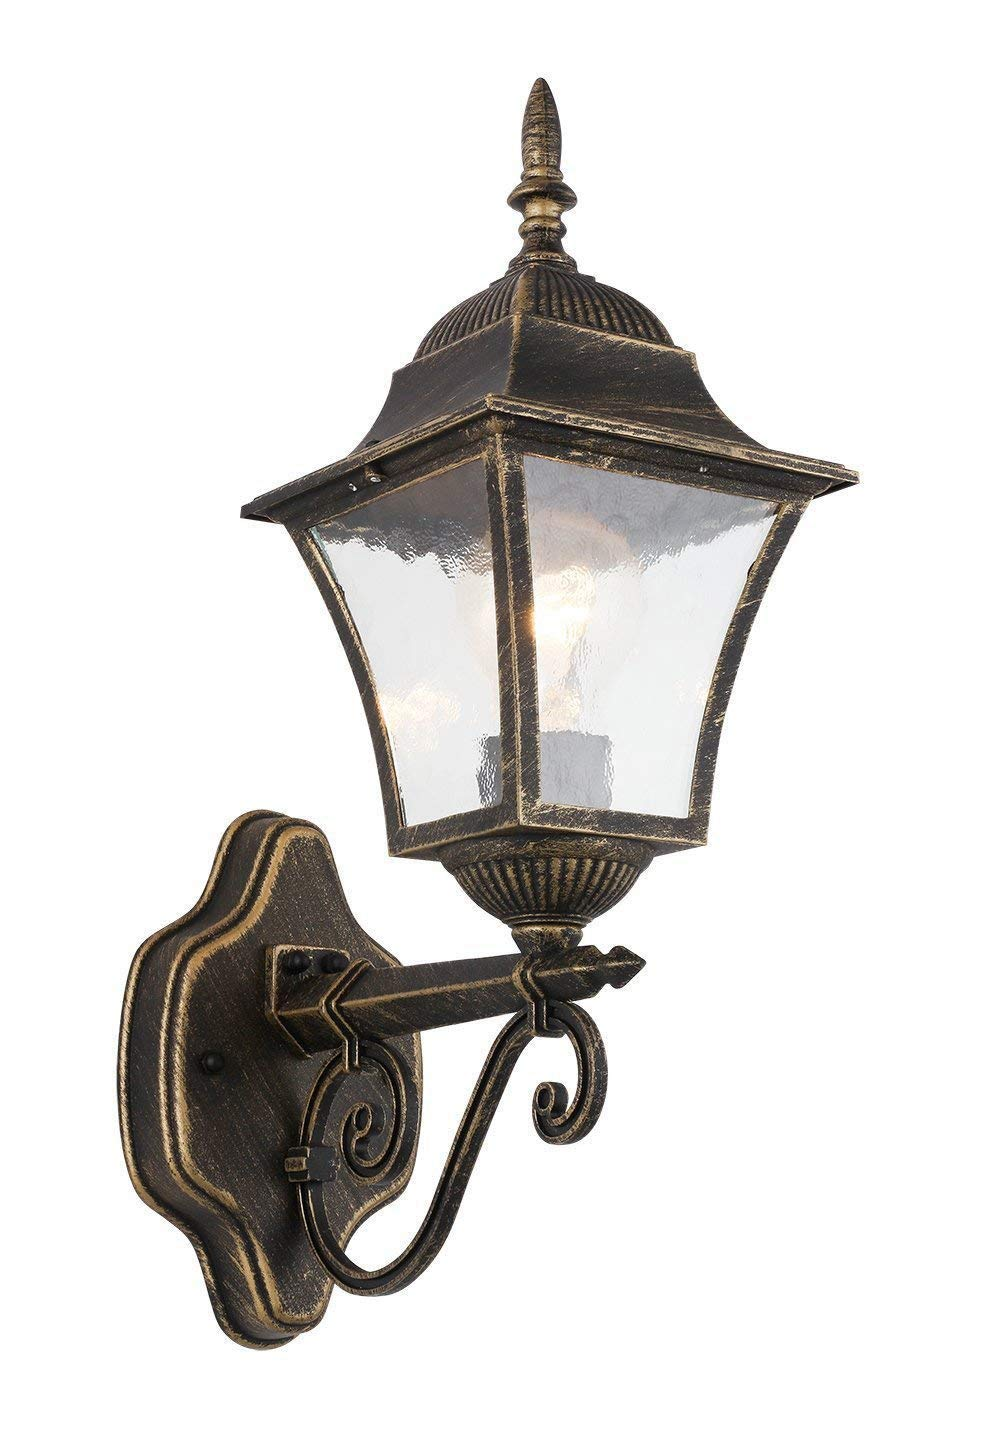 RUNNLY 1-Light Outdoor Wall Porch Lantern Sconce Light, Oil Rubbed Bronze Black